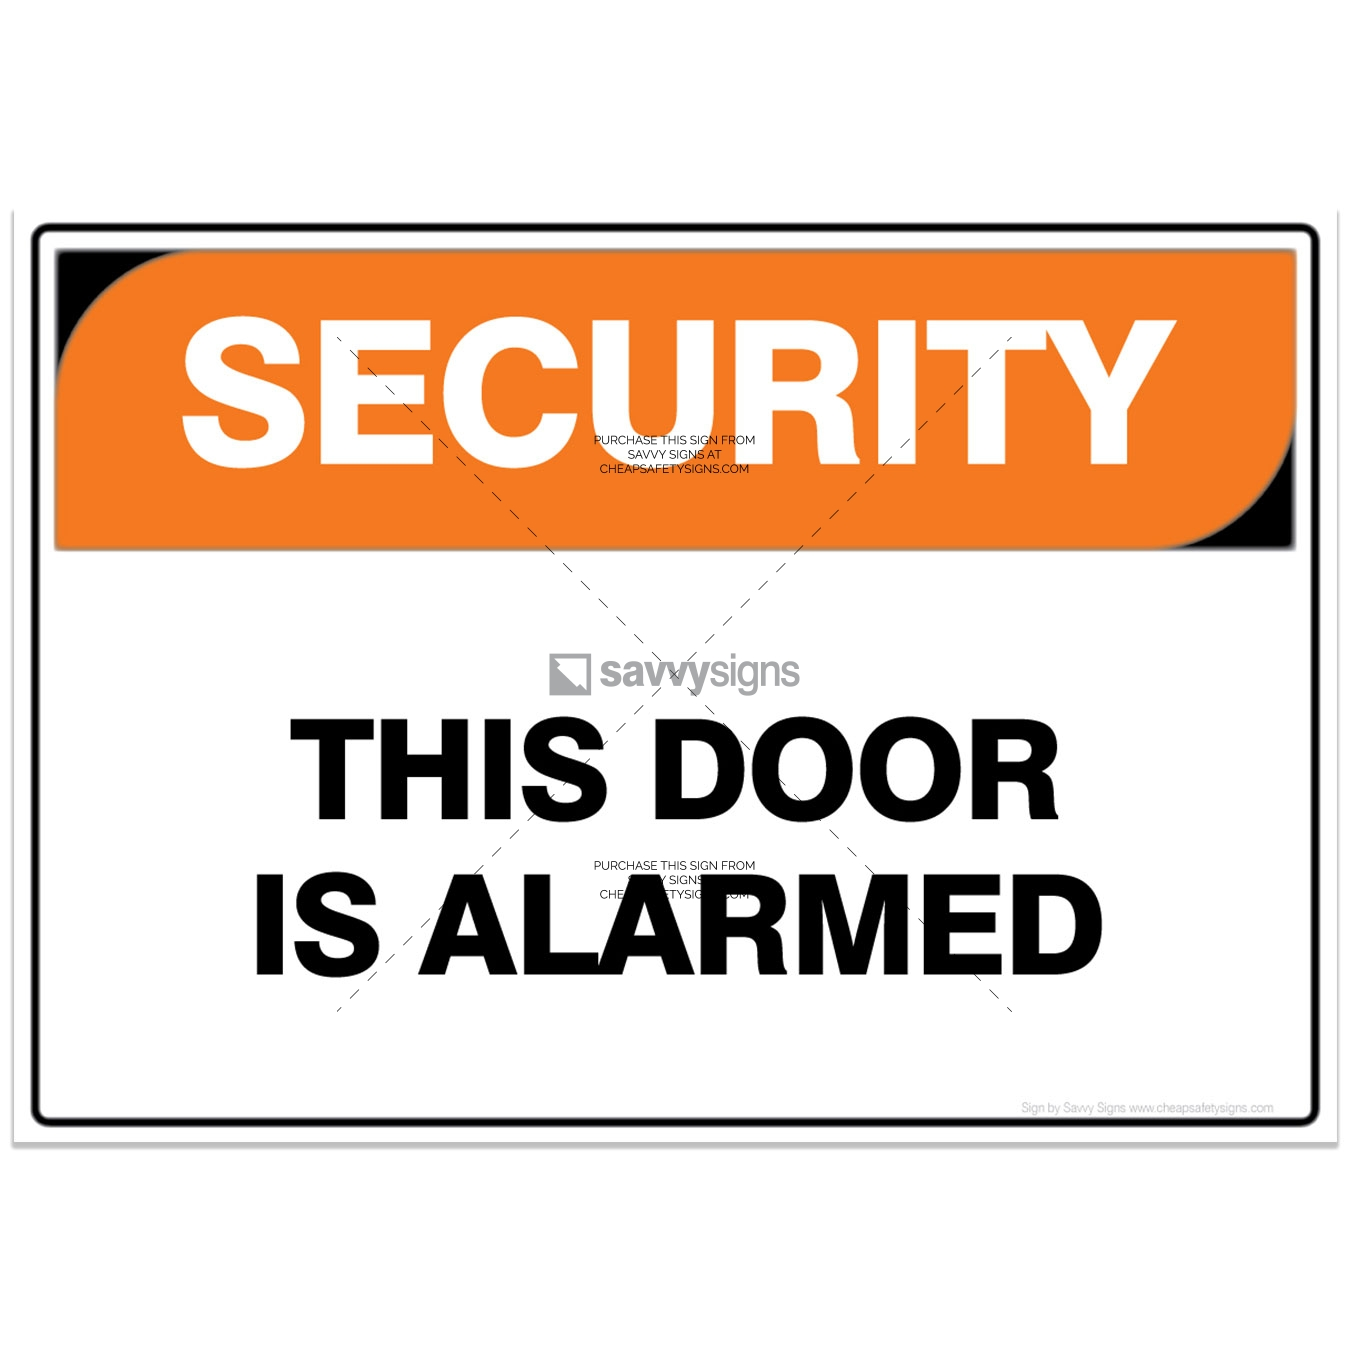 SSSEC3032-SECURITY-Workplace-Safety-Signs_Savvy-Signs_v3